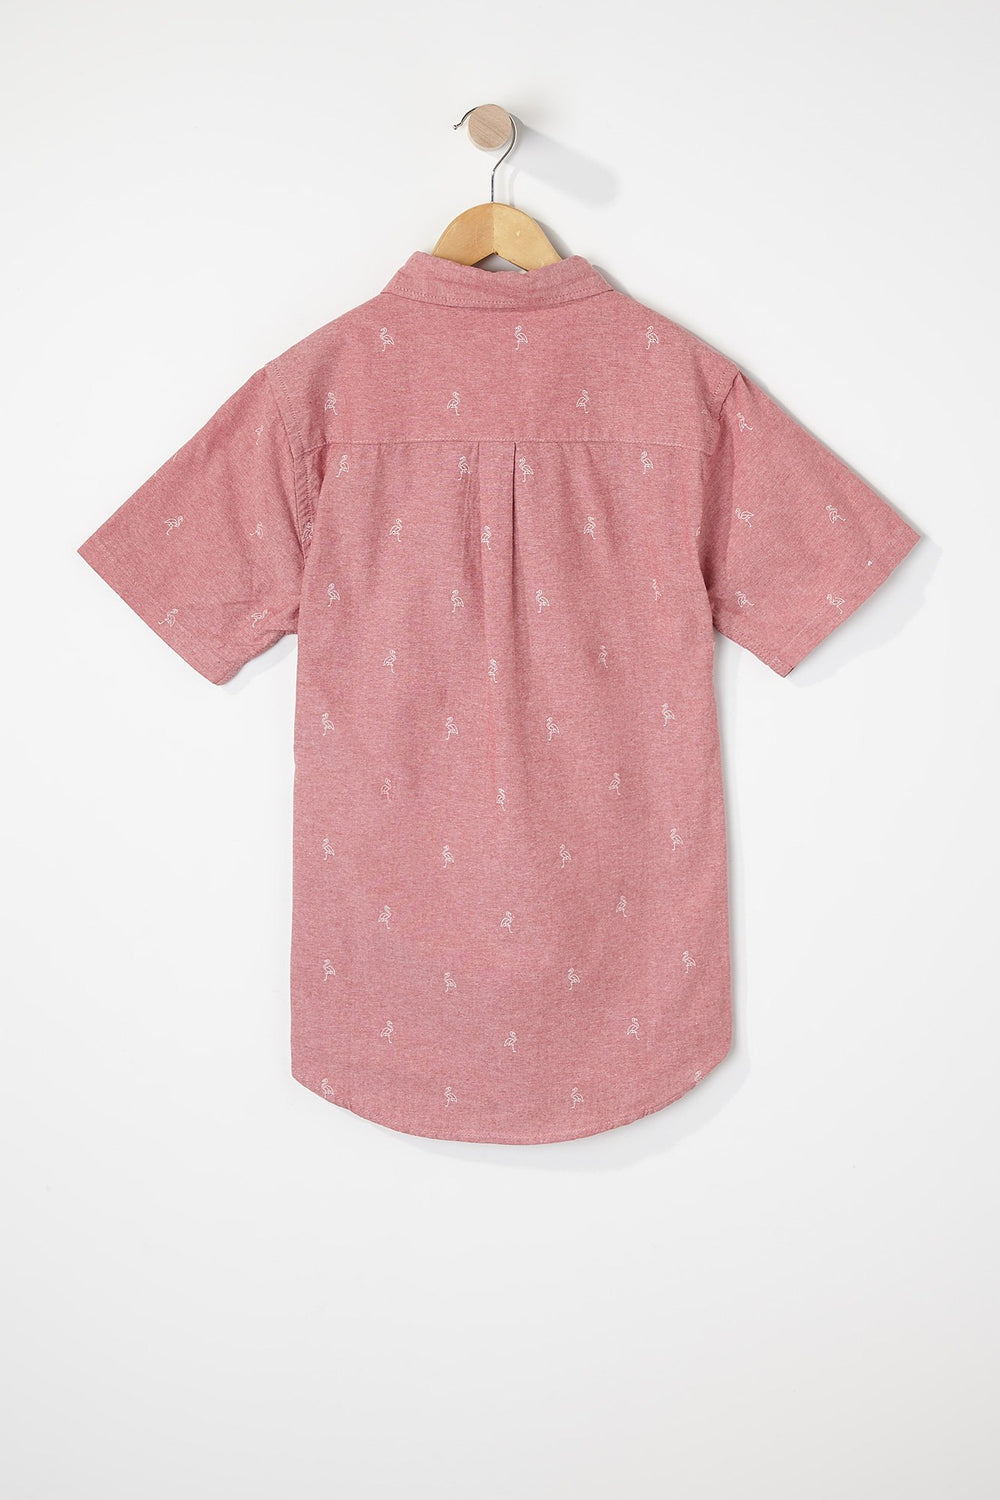 West49 Boys Ditsy Print Button-Up Rose